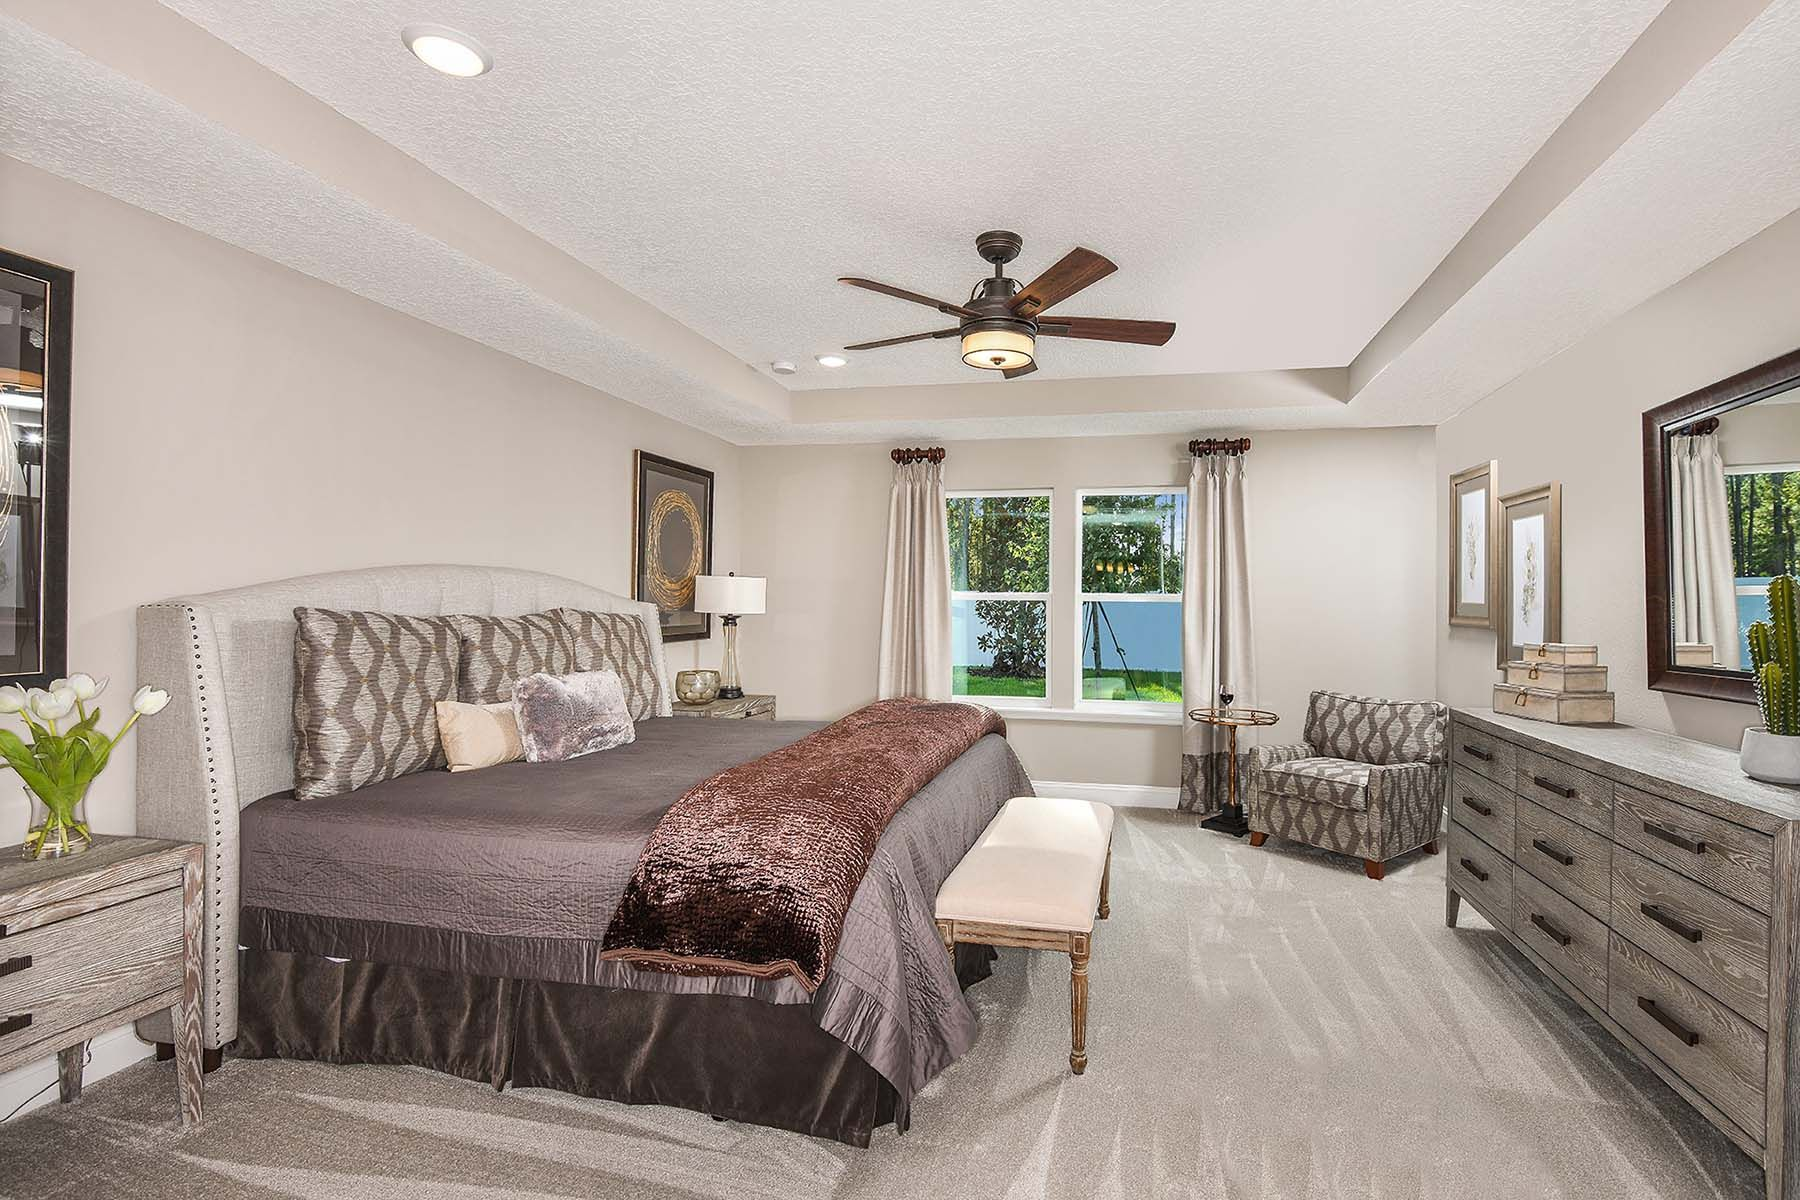 Bedroom featured in the Braden By Mattamy Homes in Jacksonville-St. Augustine, FL